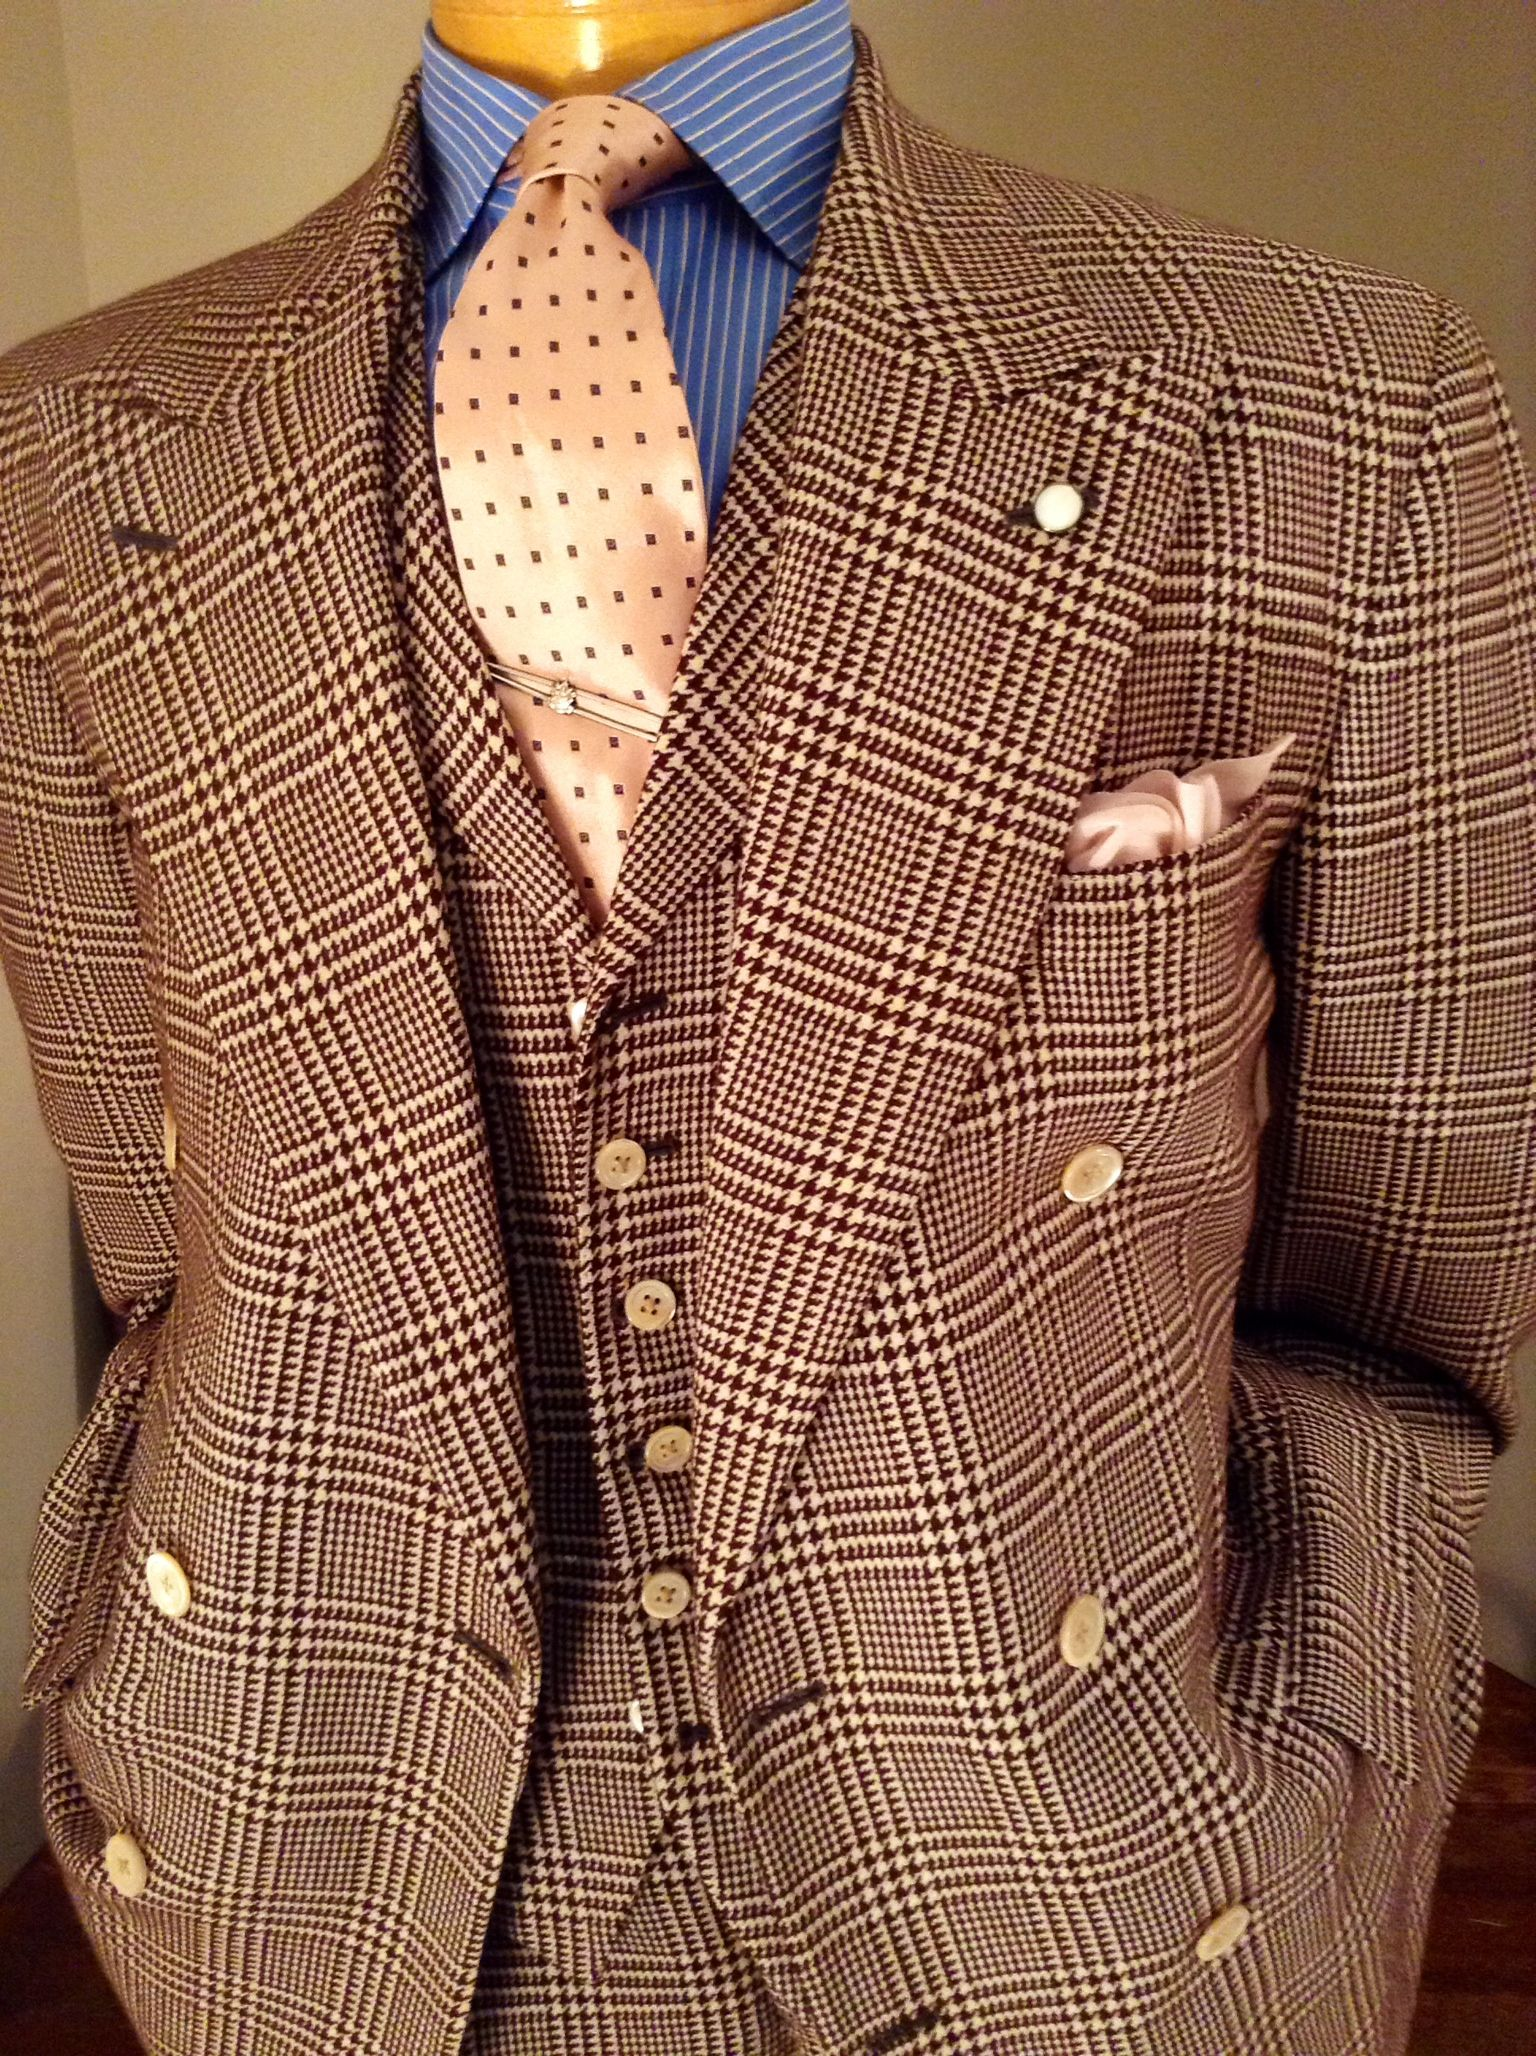 Today on the blog we talk to #JACKSIMPSONCOUTURE about American Classic Menswear - www.lenoeudpapillon.blogspot.com